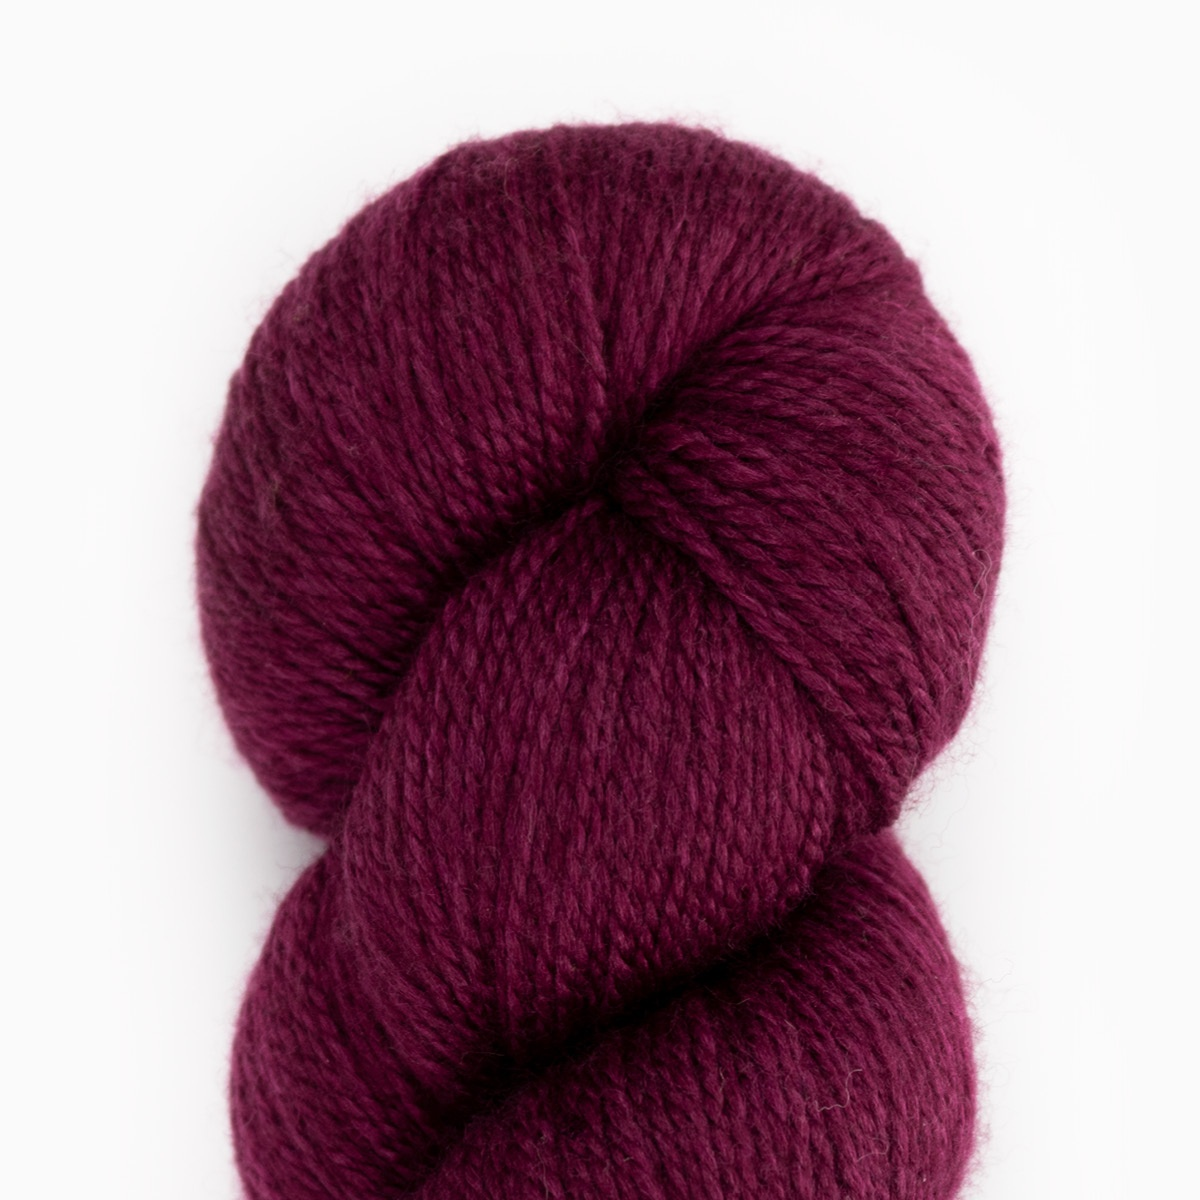 West Yorkshire Spinners Exquisite 4ply Bordeaux 558